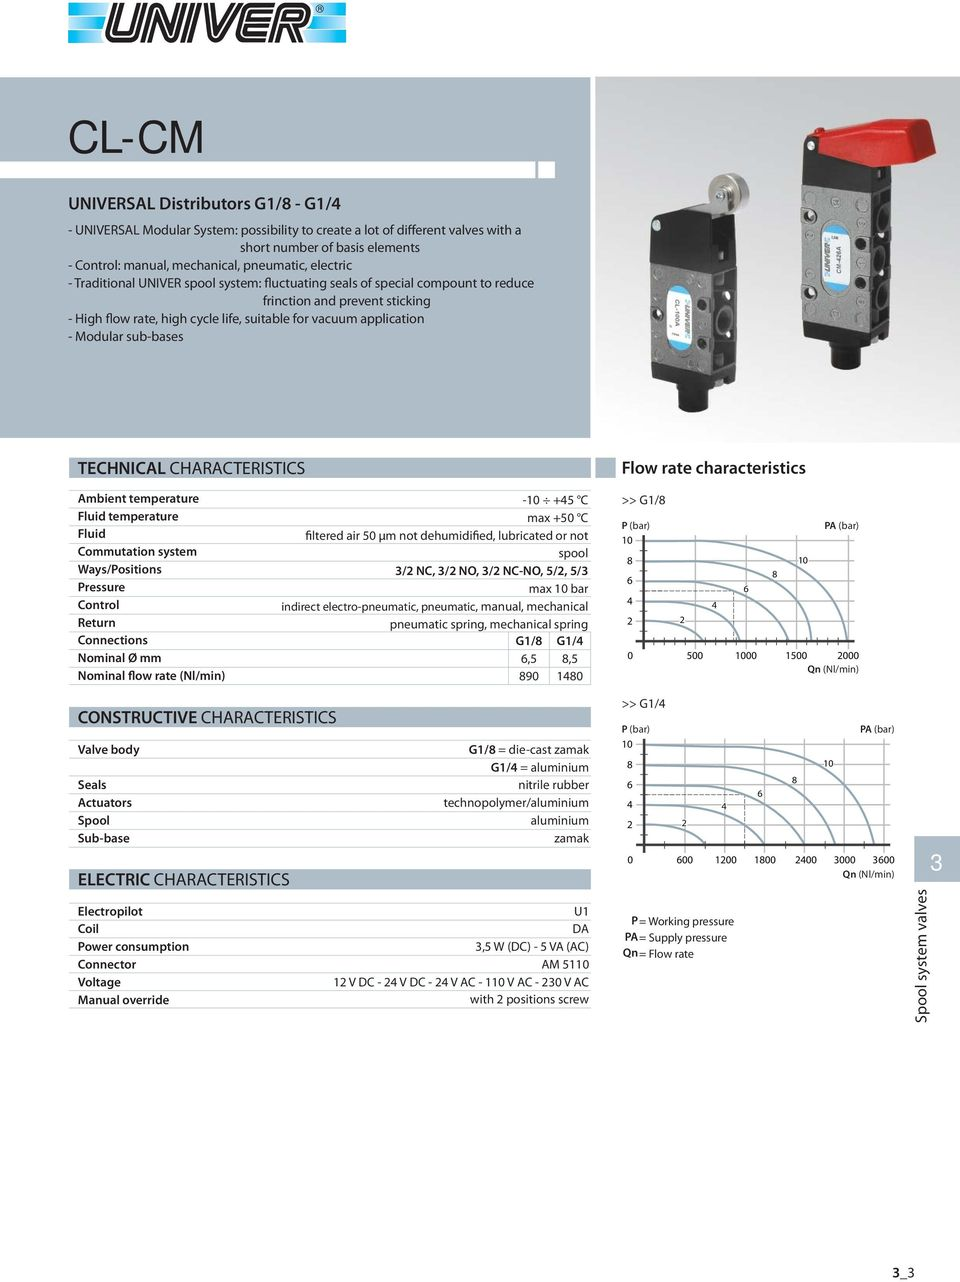 characteristics mbient temperature luid temperature luid outation system Ways/Positions Pressure ontrol onnections Nominal Ø Nominal flow rate (Nl/min) -0 +5 max +50 filtered air 50 μm not